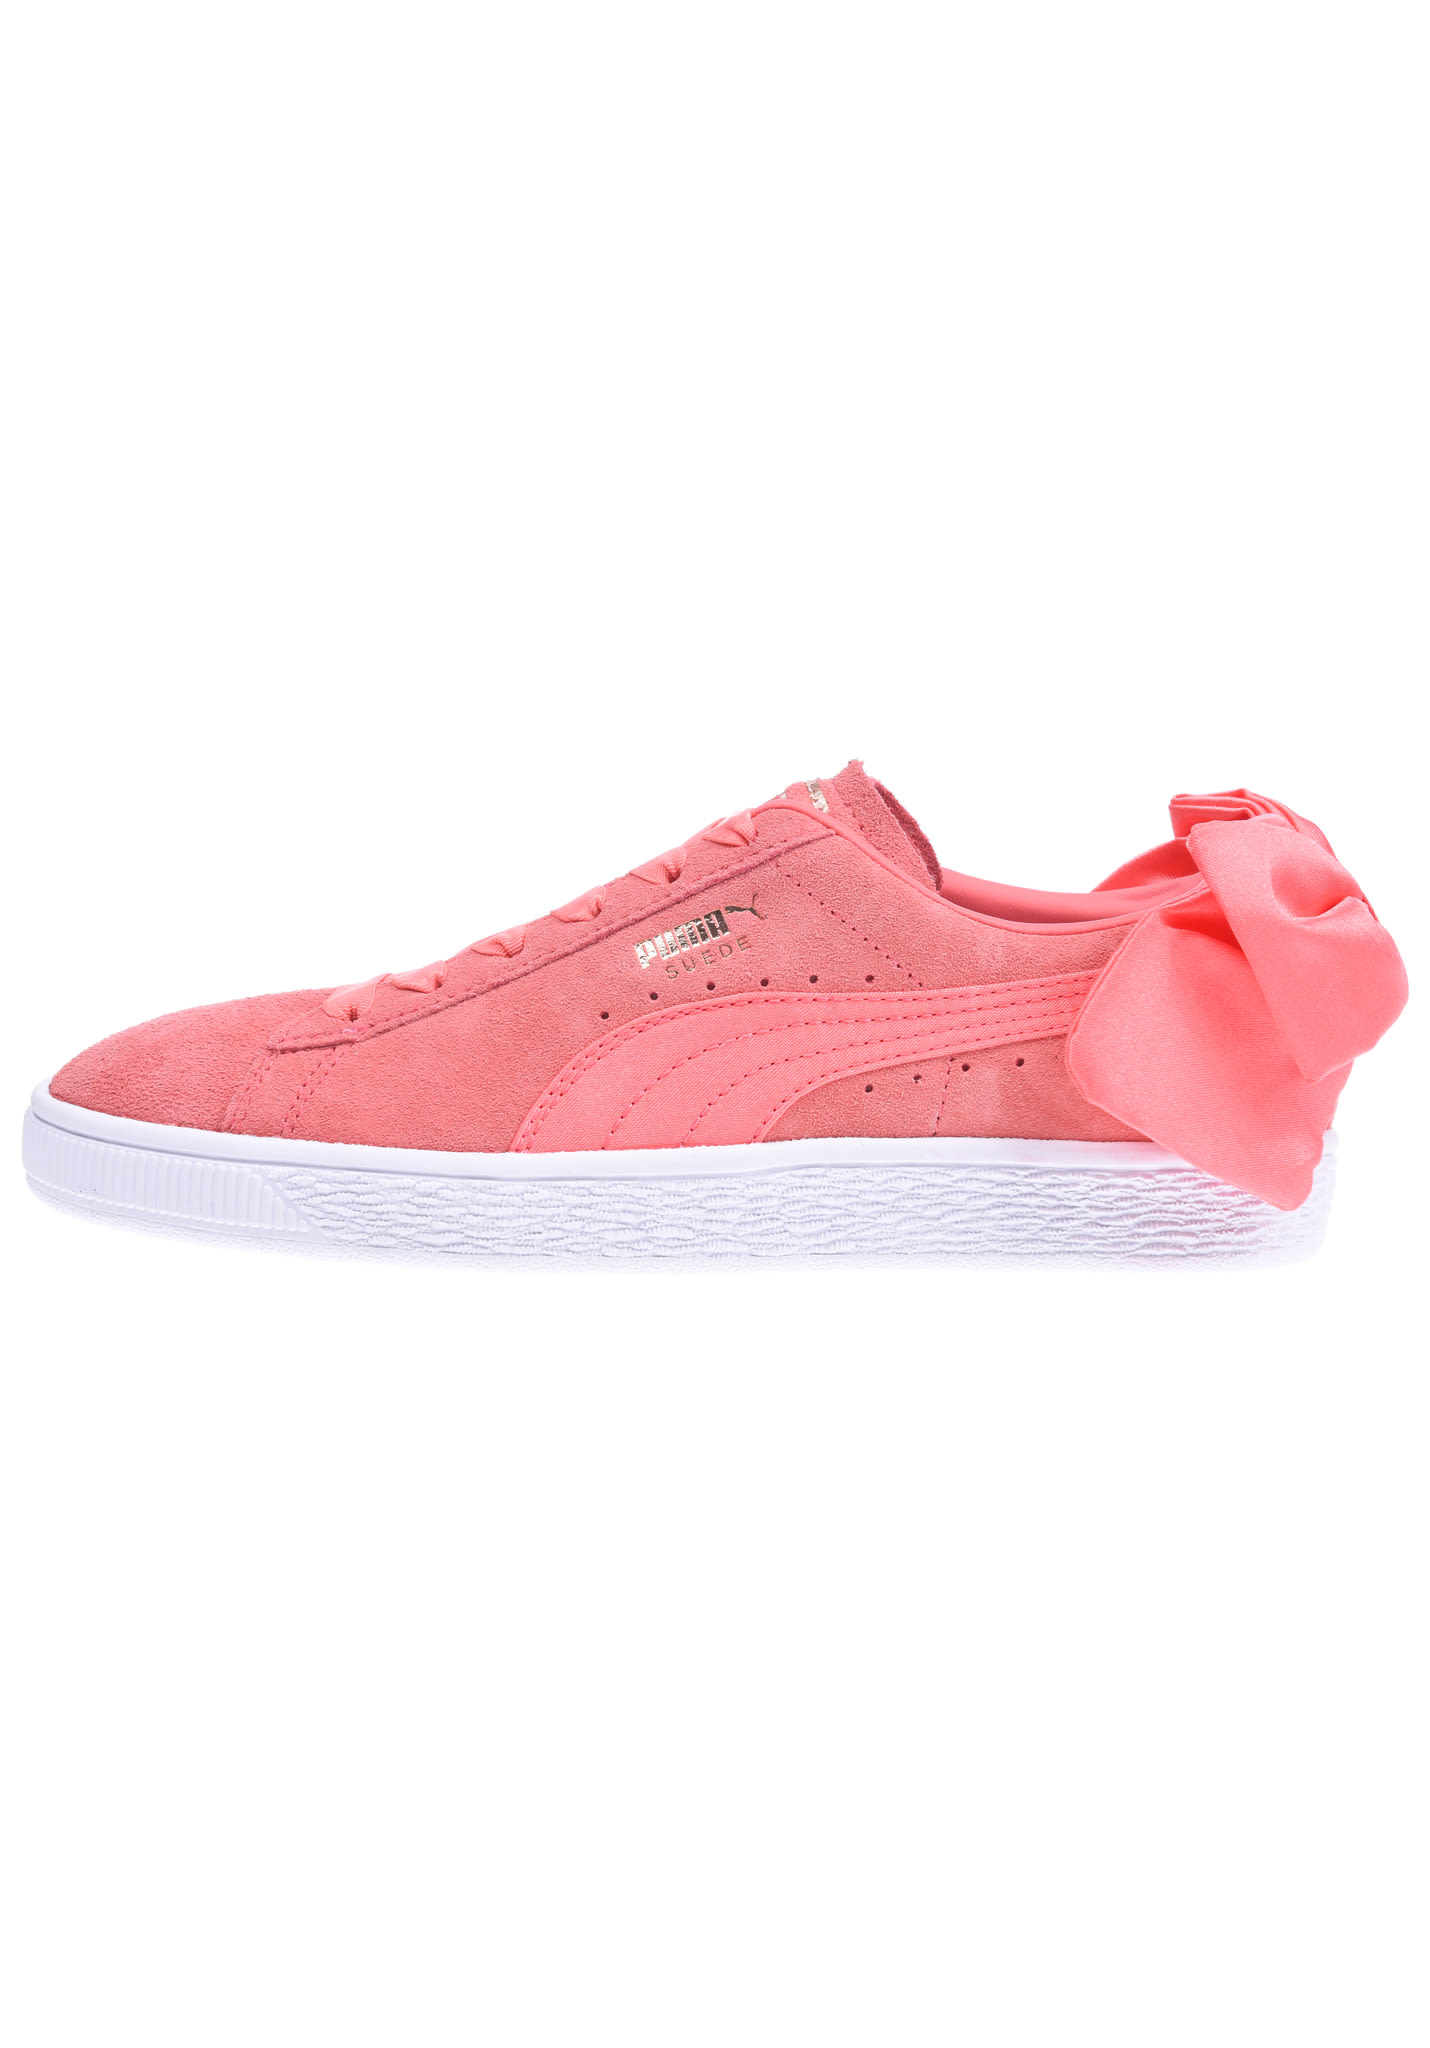 25157bdadd605d Puma Suede Bow - Sneakers for Women - Pink - Planet Sports